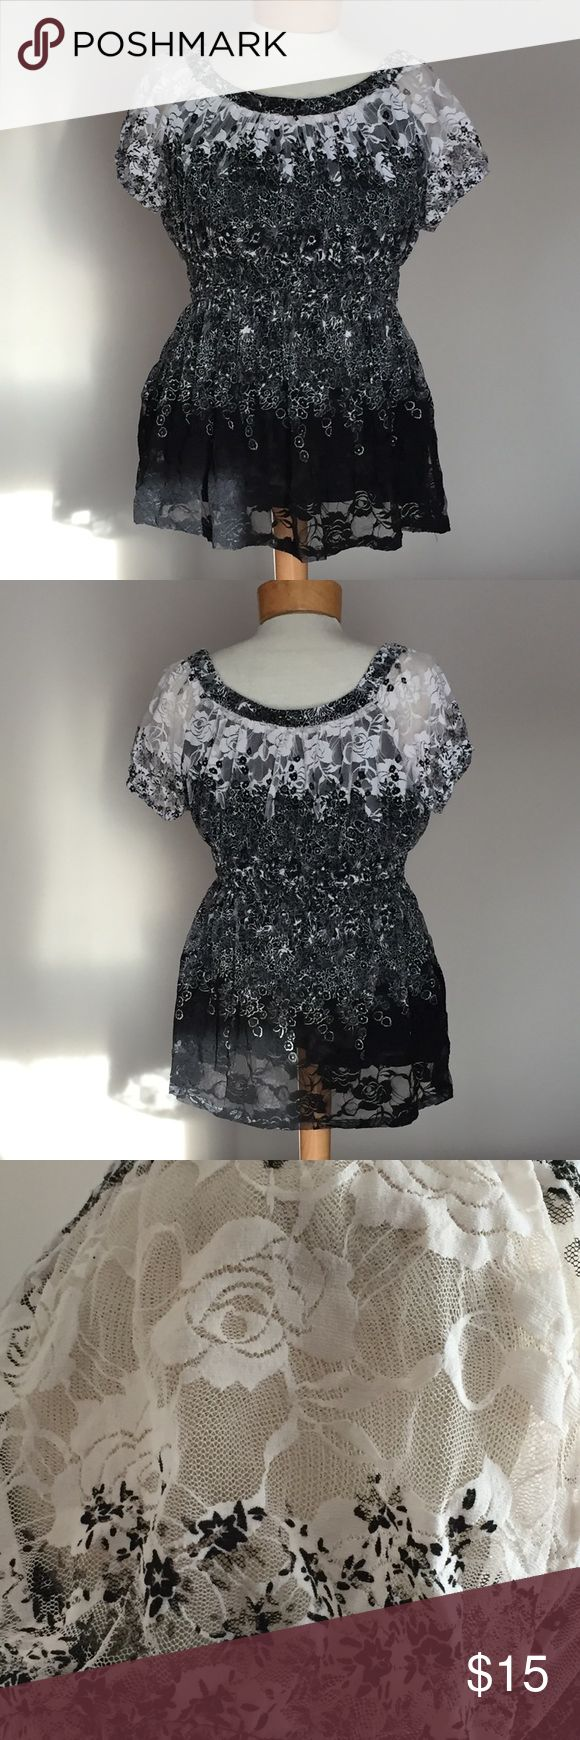 """Dress Barn black and white Lace top. Size Xlarge Like new Dress Barn black and white Lace top. Size Xlarge. 25"""" long. Nylon with 8% spandex. Dress Barn Tops"""